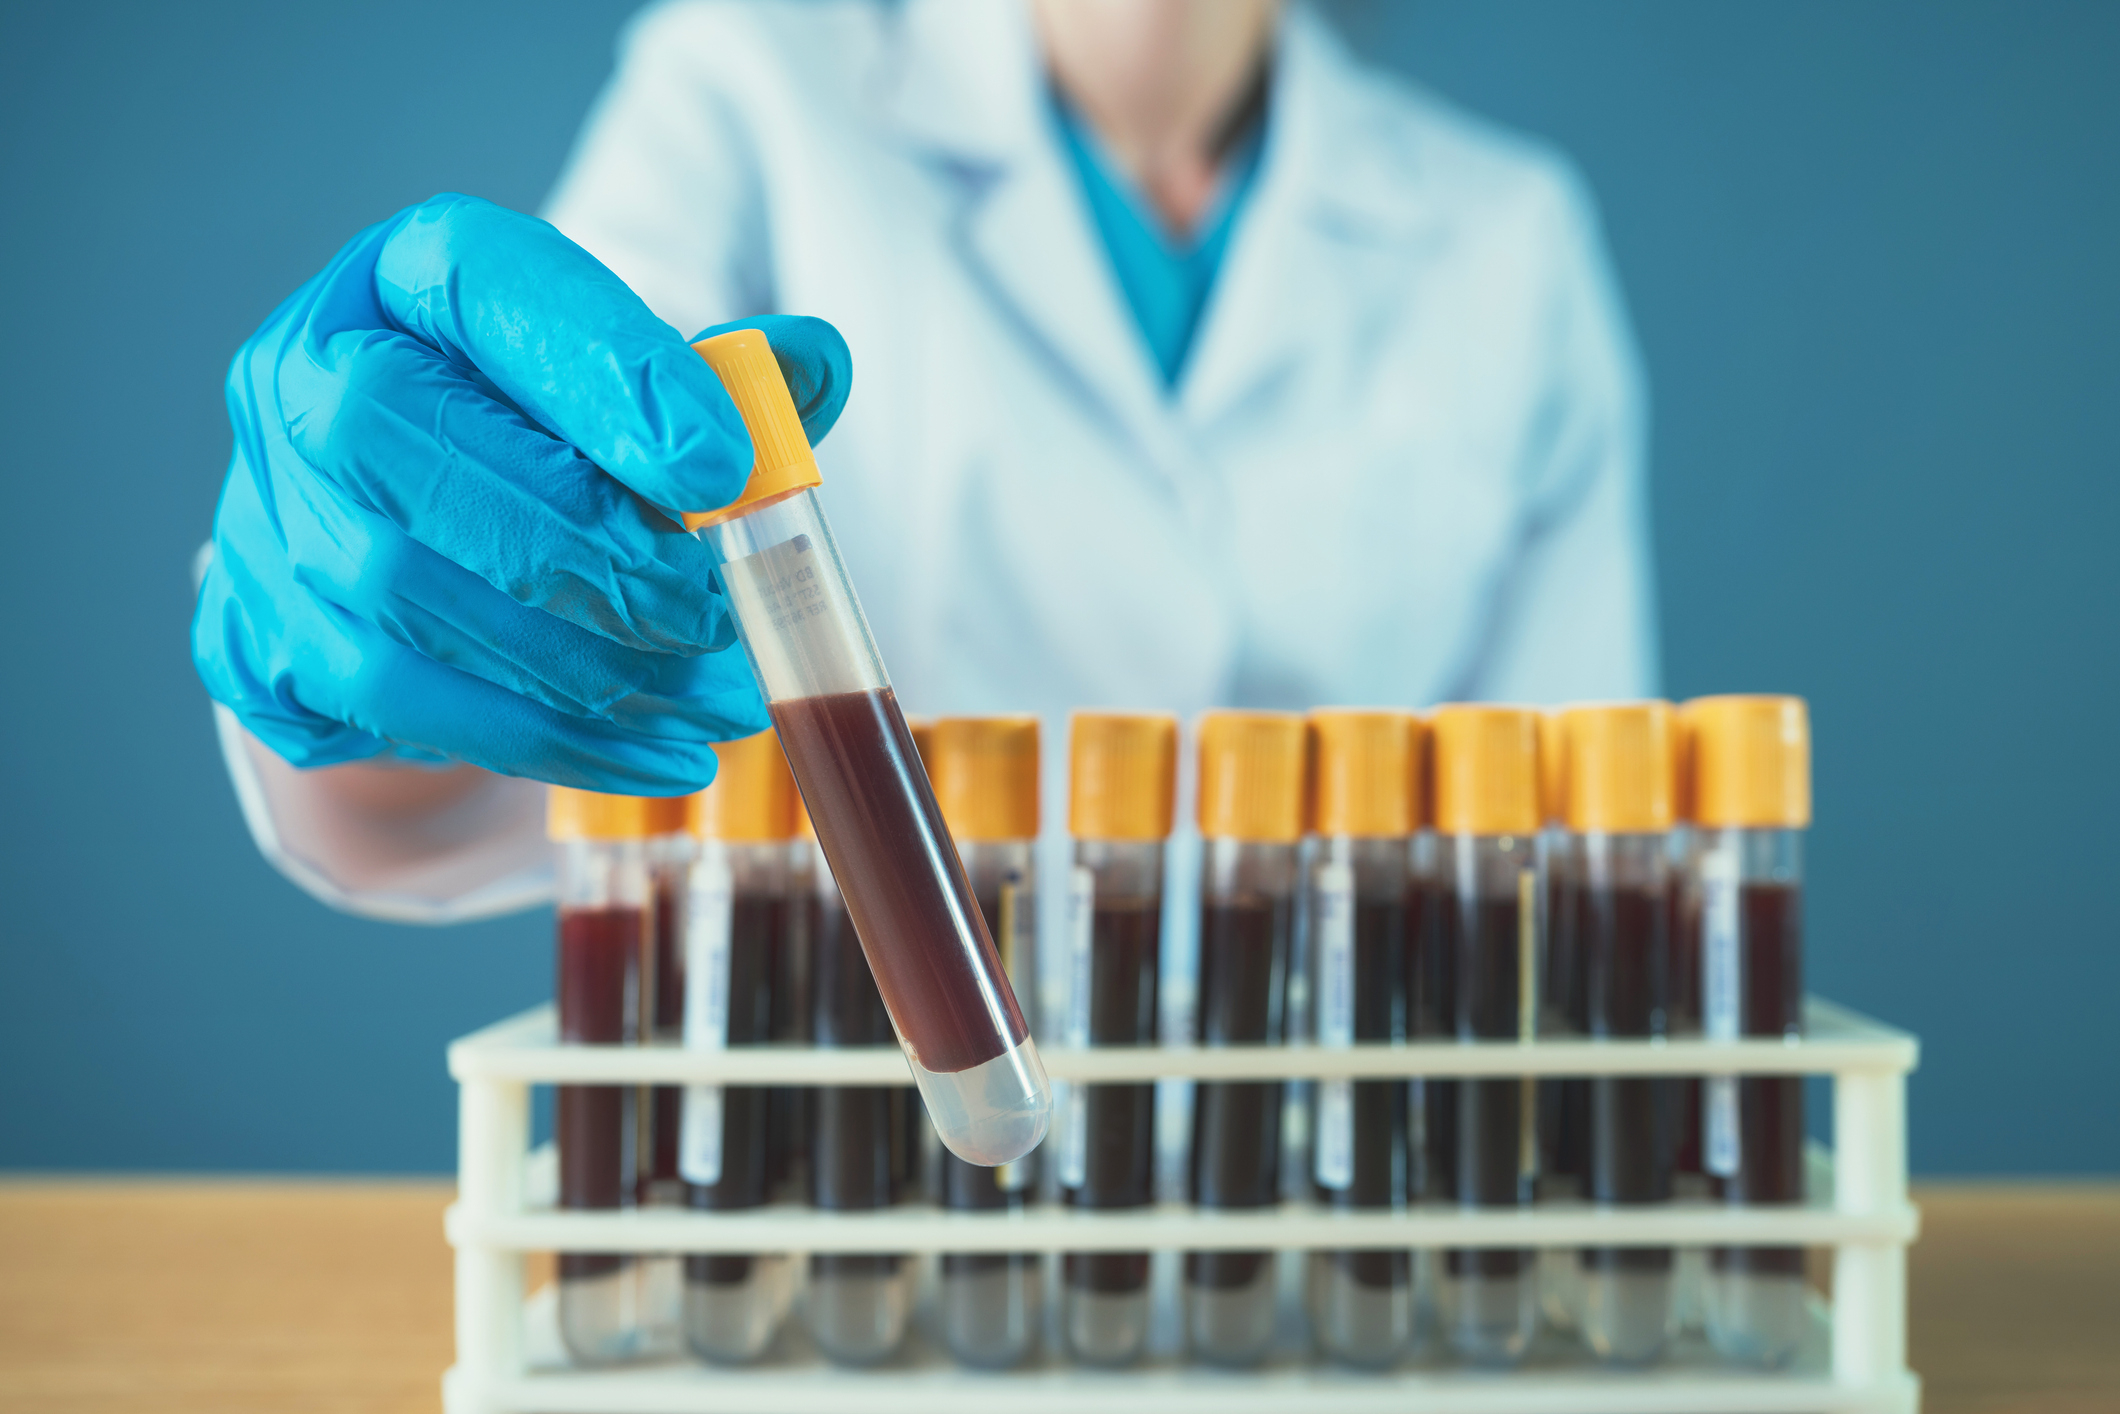 Test Measures Immune Response To Improve Ovarian Cancer Diagnosis Rmit University